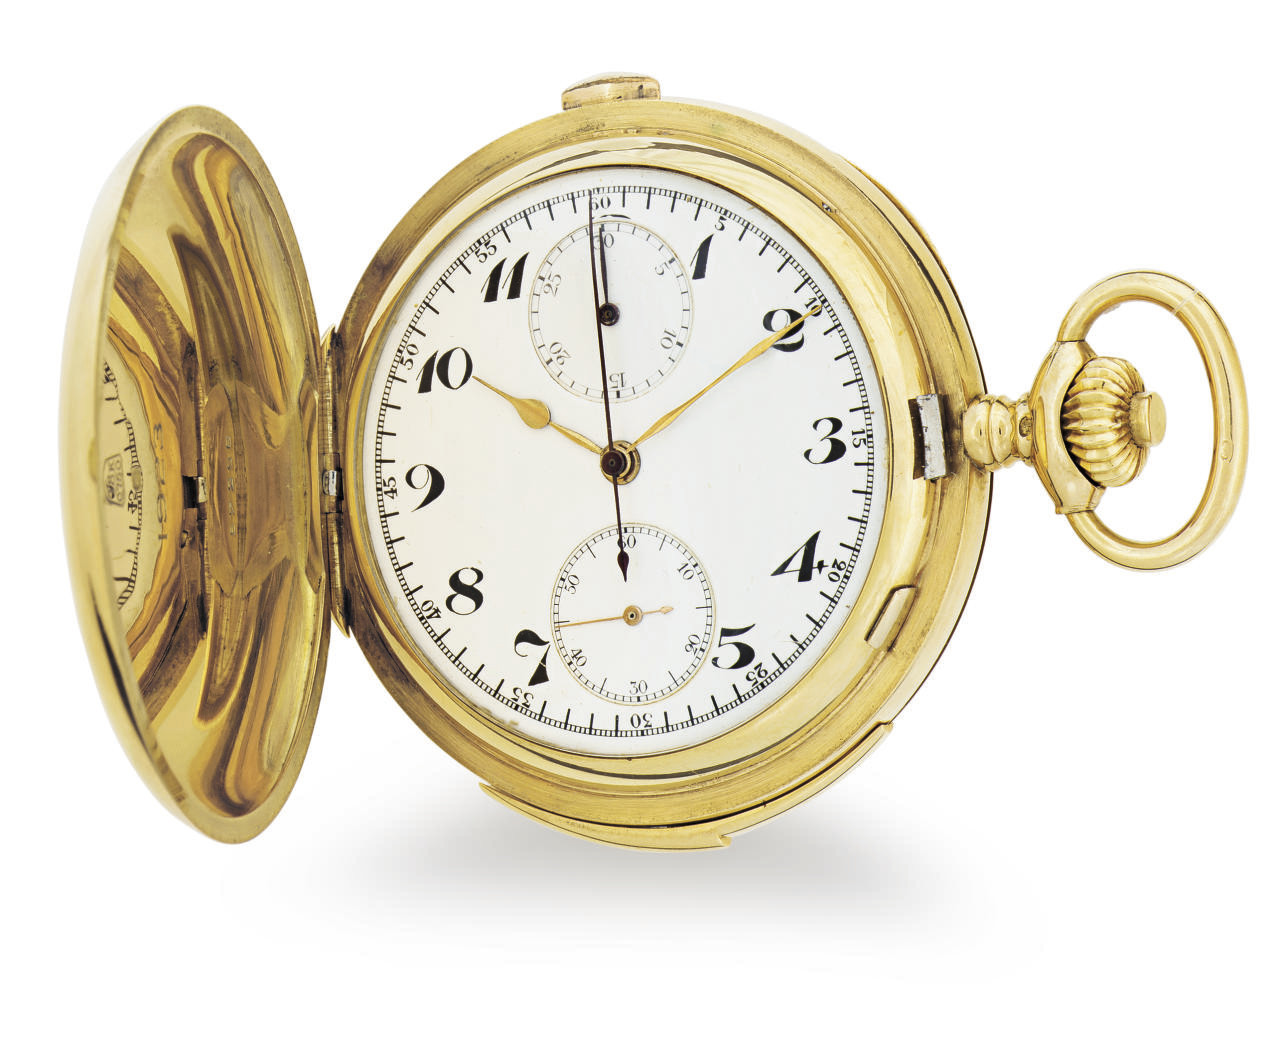 HENRI PARENT.  AN 18K GOLD MINUTE REPEATING CHRONOGRAPH HUNTER CASE KEYLESS LEVER POCKET WATCH